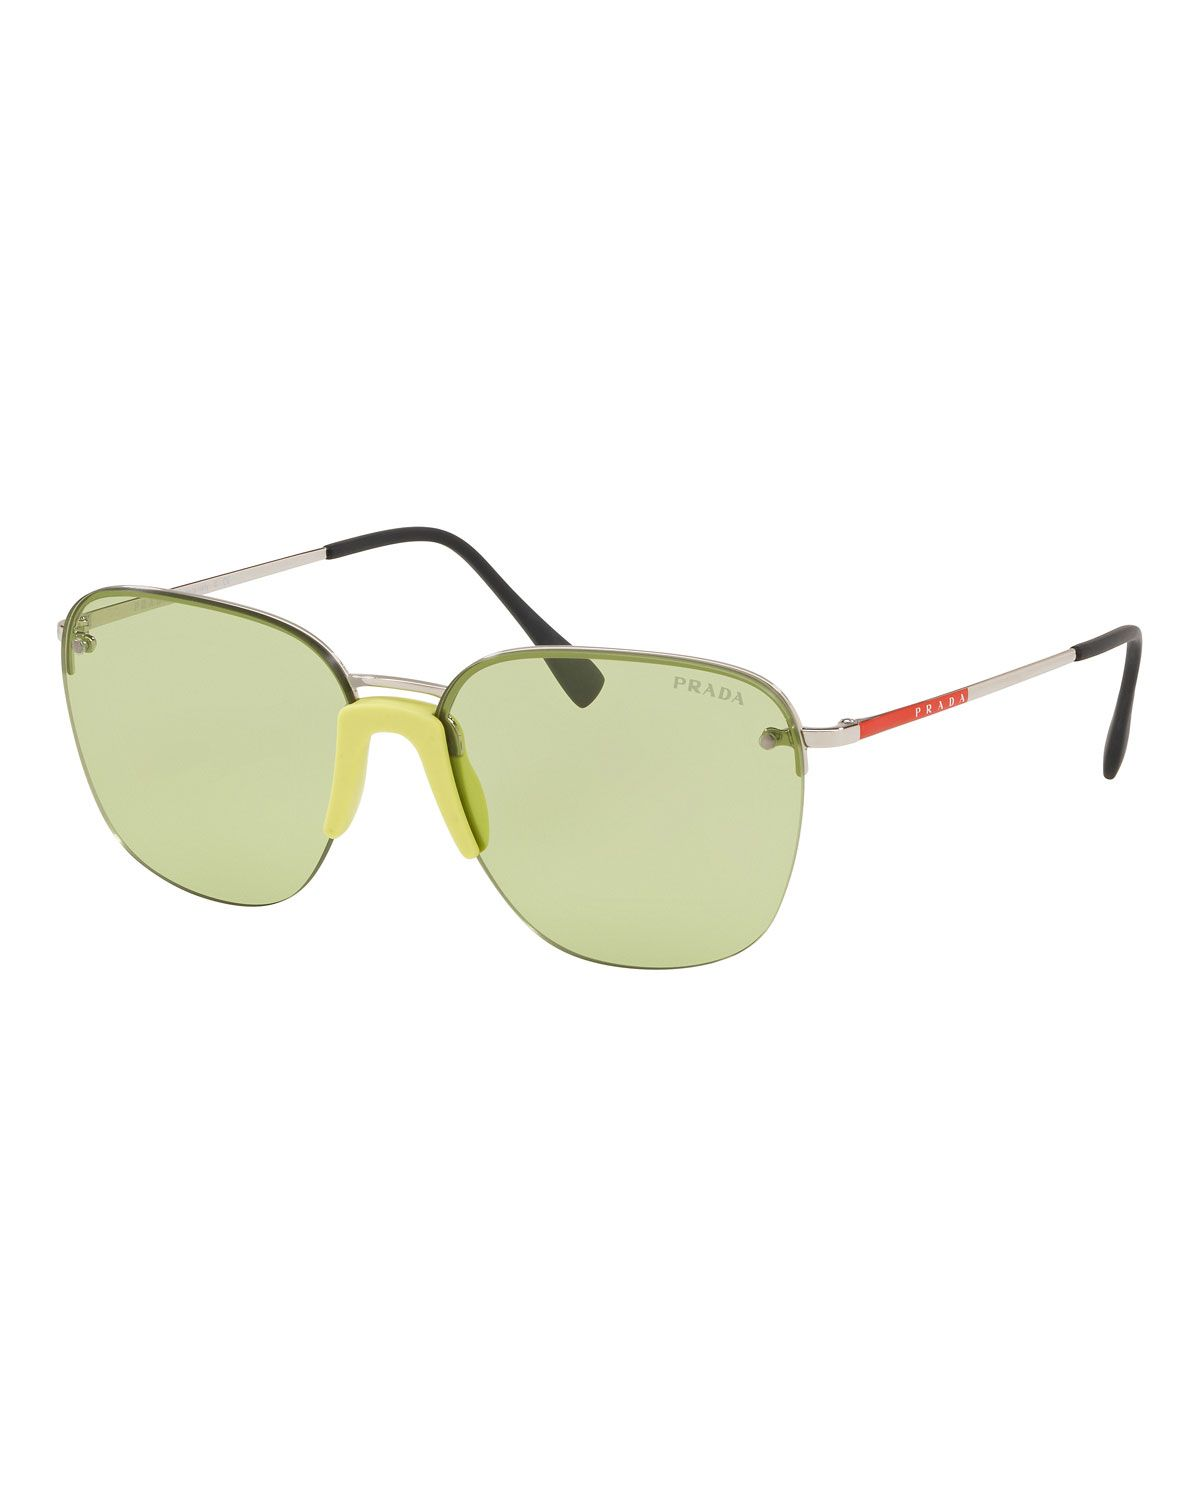 42cefd88e94 PRADA MEN S RIMLESS METAL SUNGLASSES.  prada